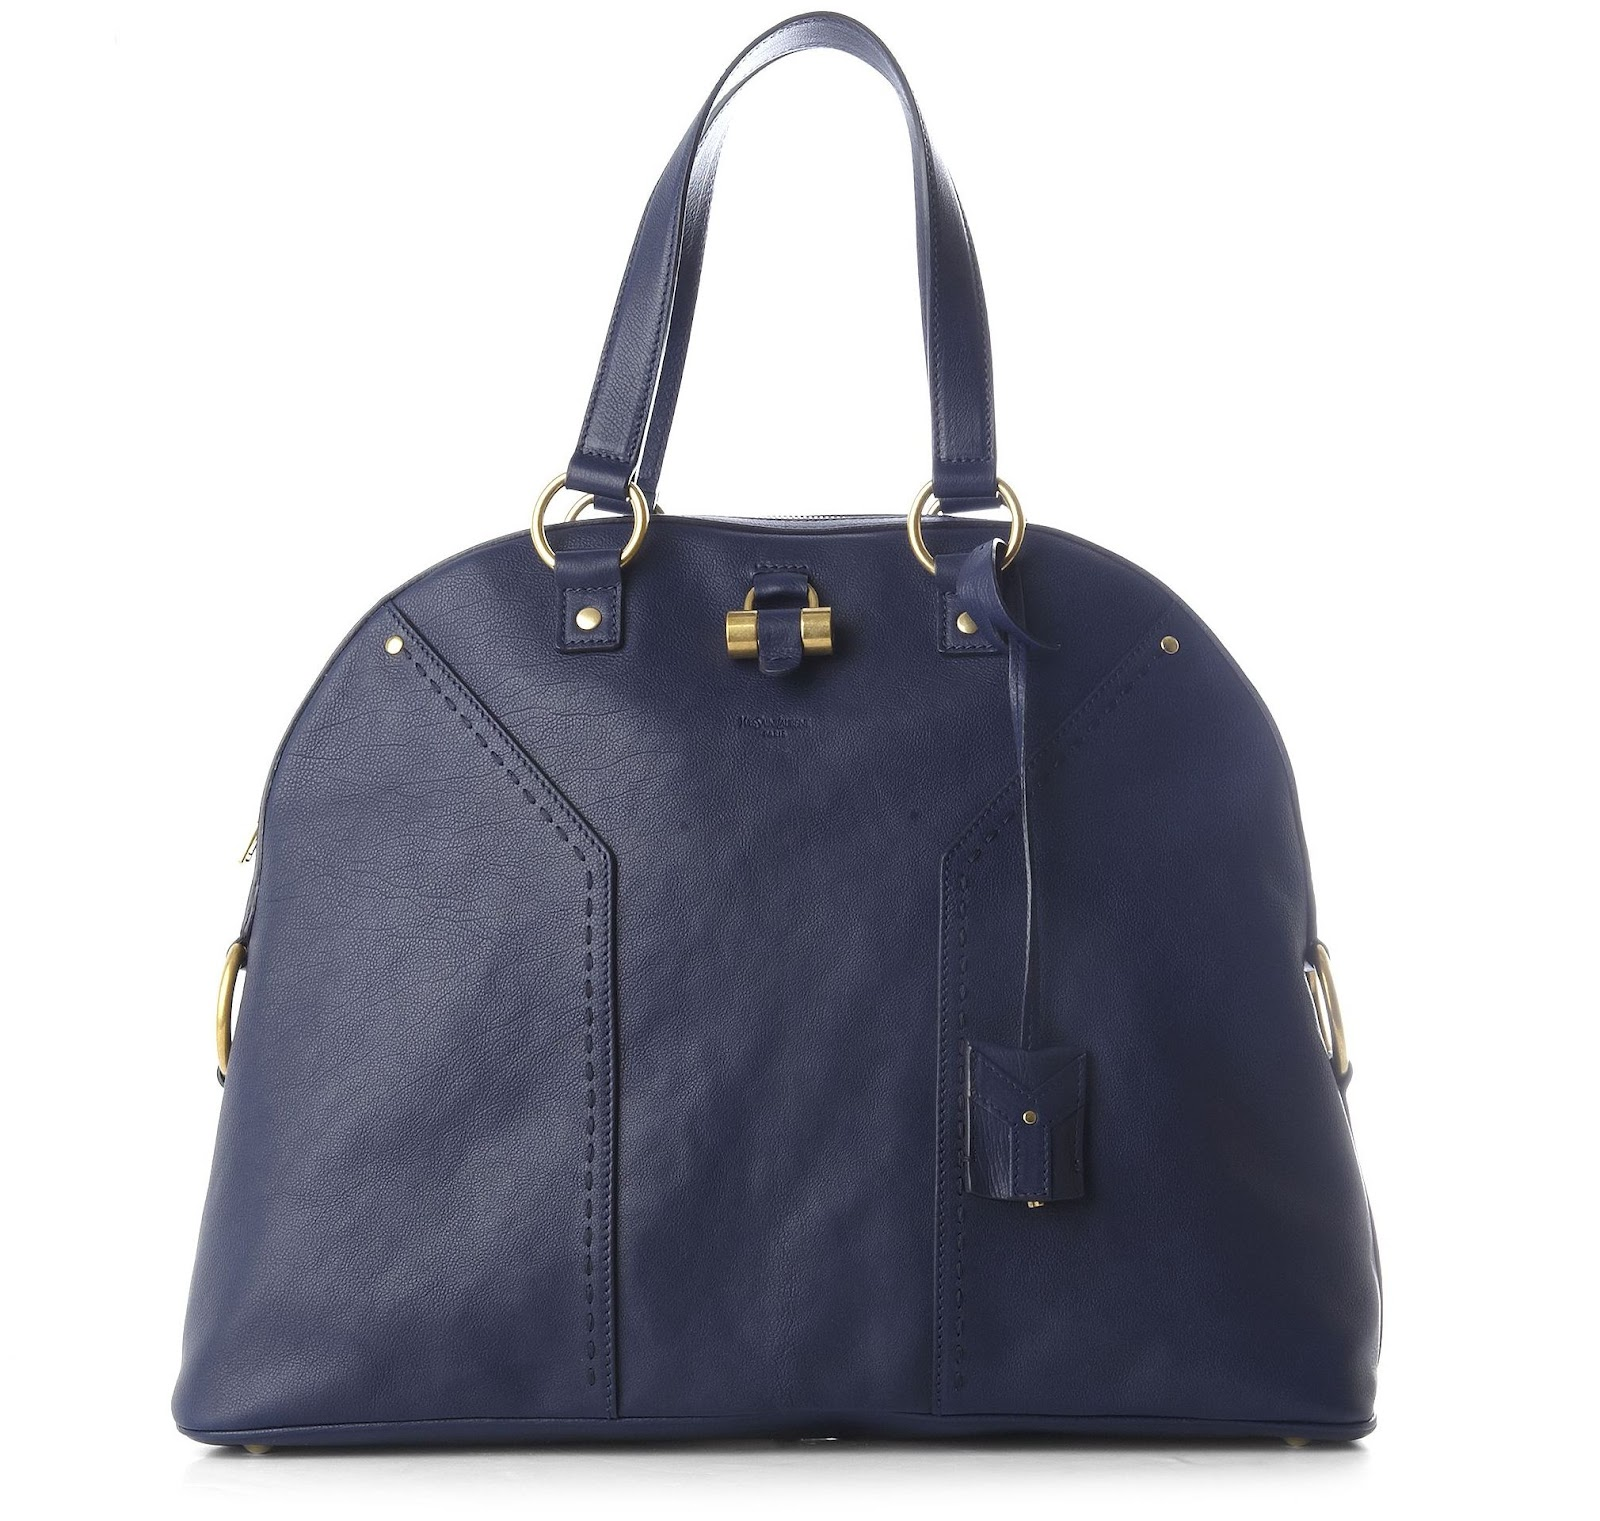 http://4.bp.blogspot.com/-kseR0GvA0pQ/T-EA2o36t2I/AAAAAAAABRE/pawV3oL5K9U/s1600/yves-saint-laurent-marine-muse-oversized-leather-tote-blue-product-1-97525-405736044_full.jpeg